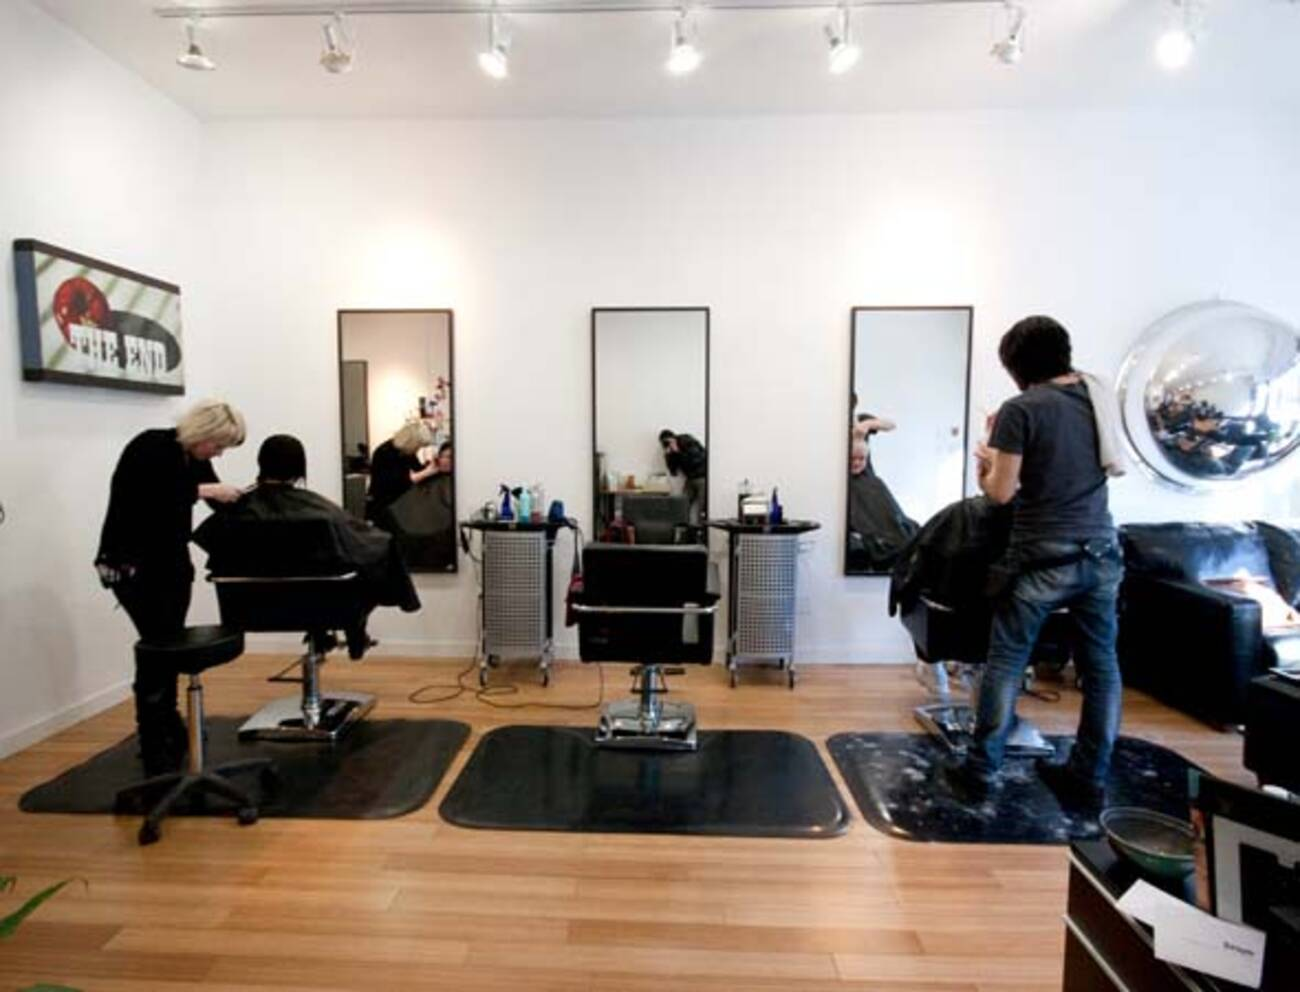 Upscale hair salon opens near college and dufferin for Hair salons open near me